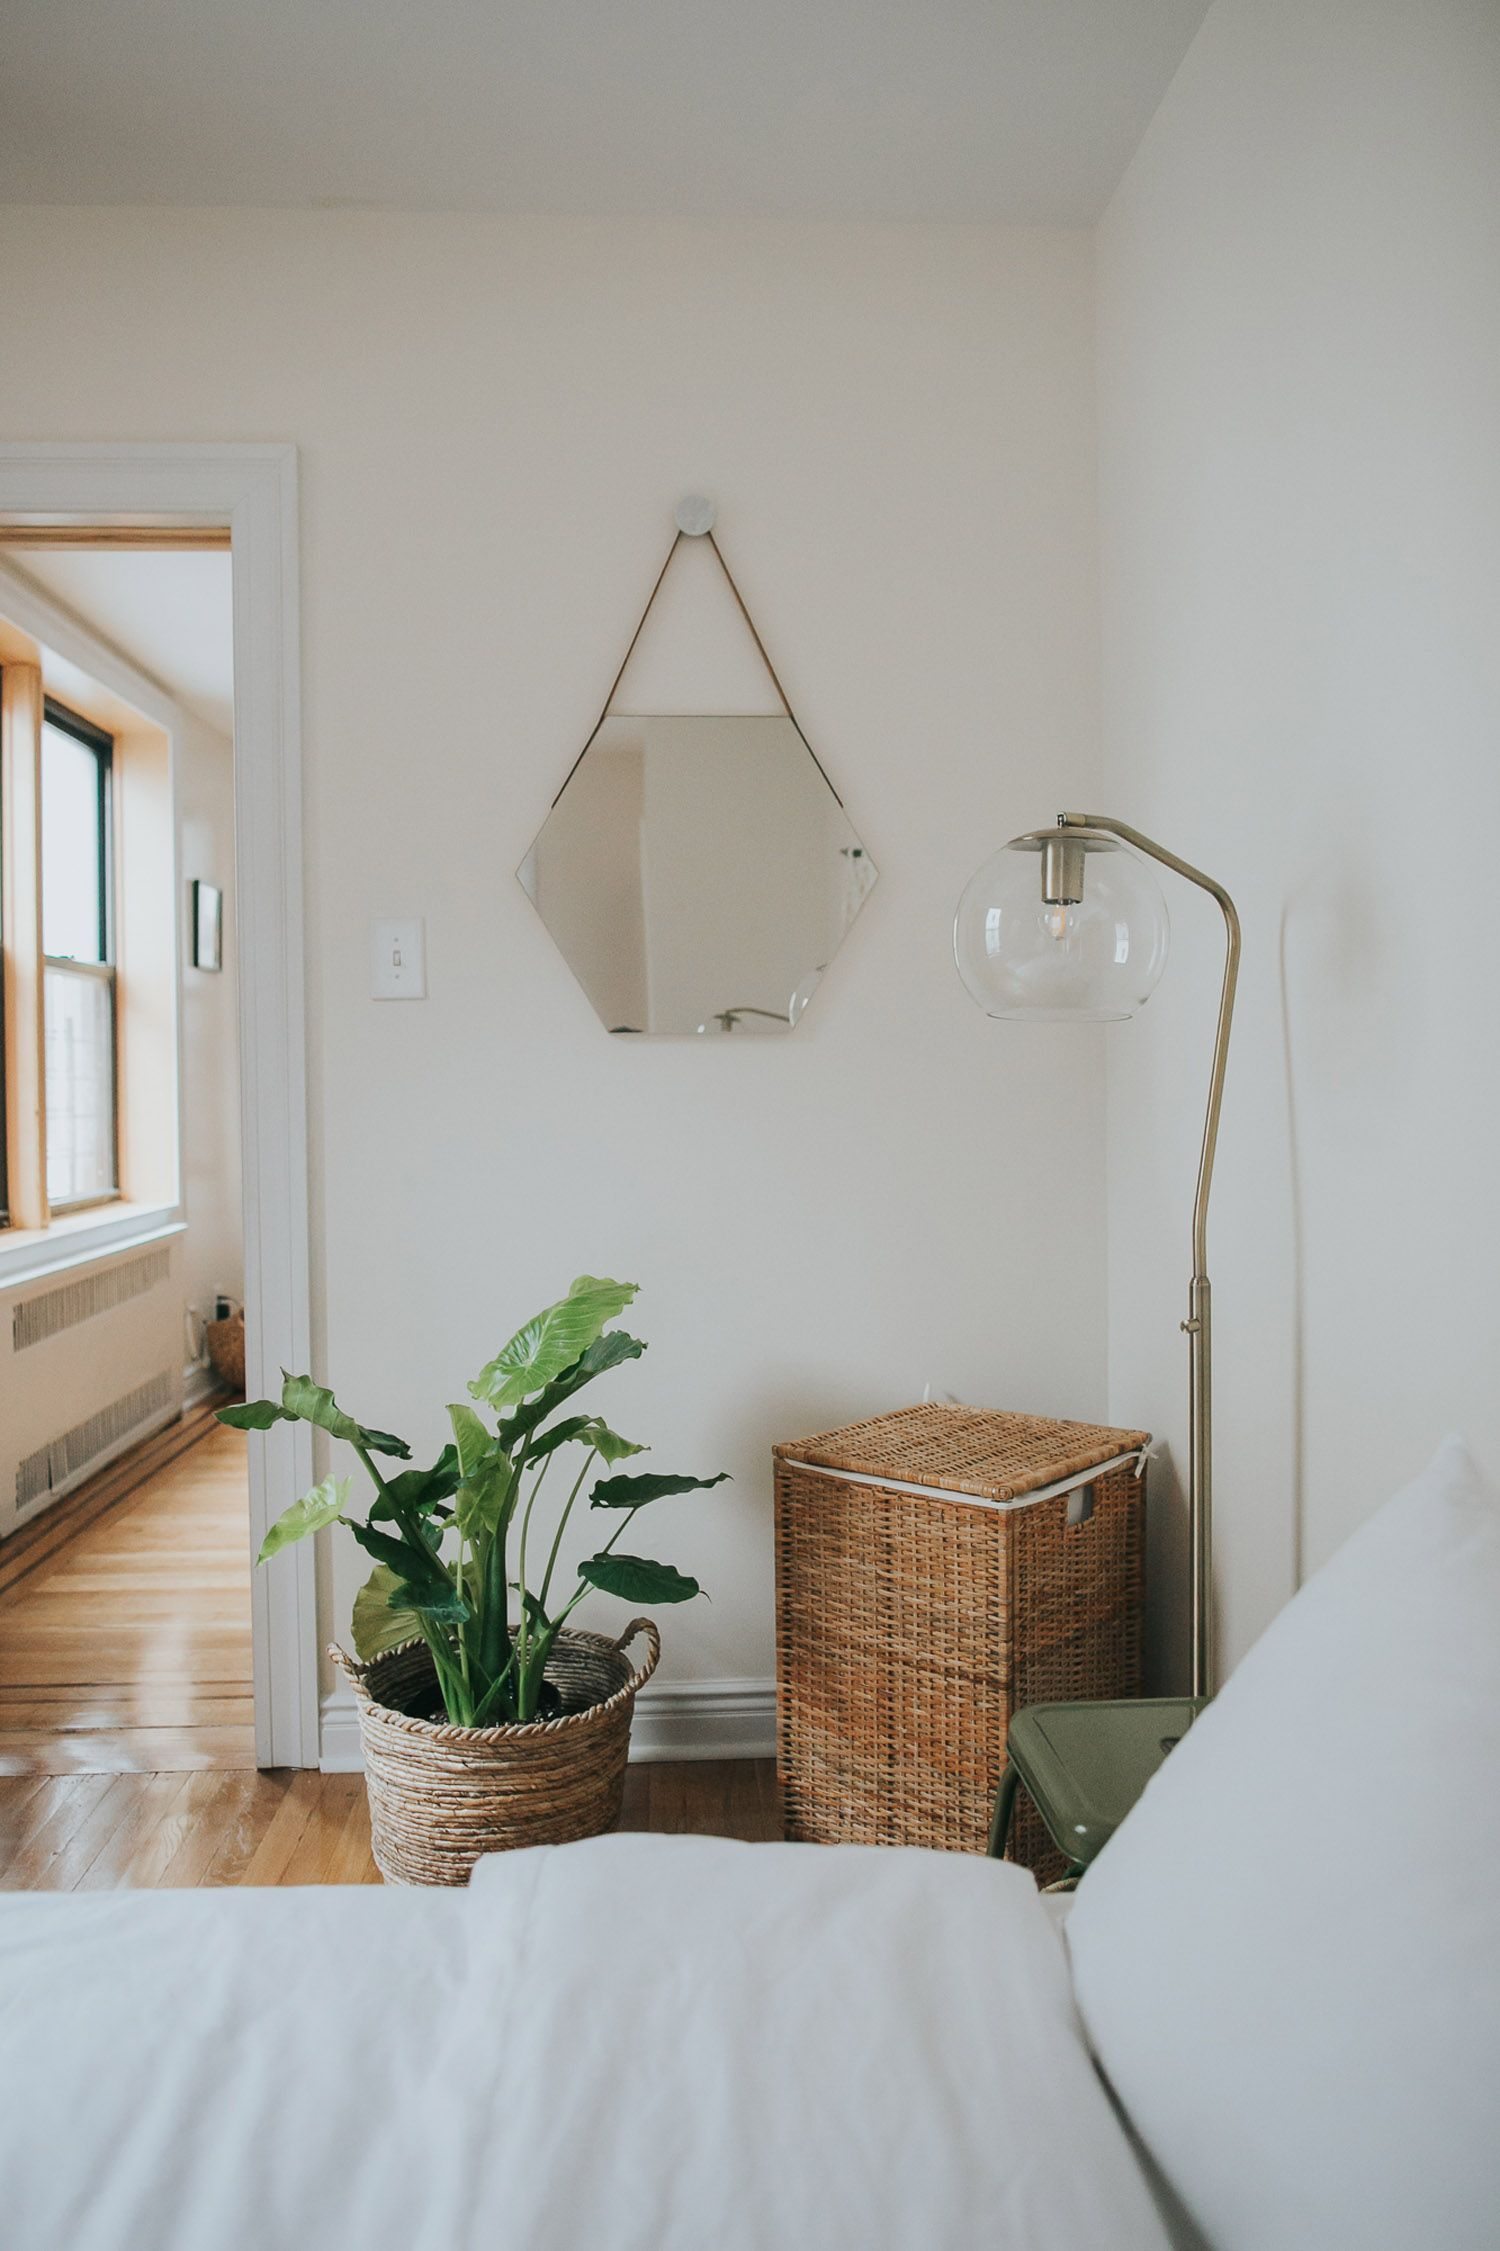 Home Tour — Hailey Andresen | apartment | Pinterest - Slaapkamer ...